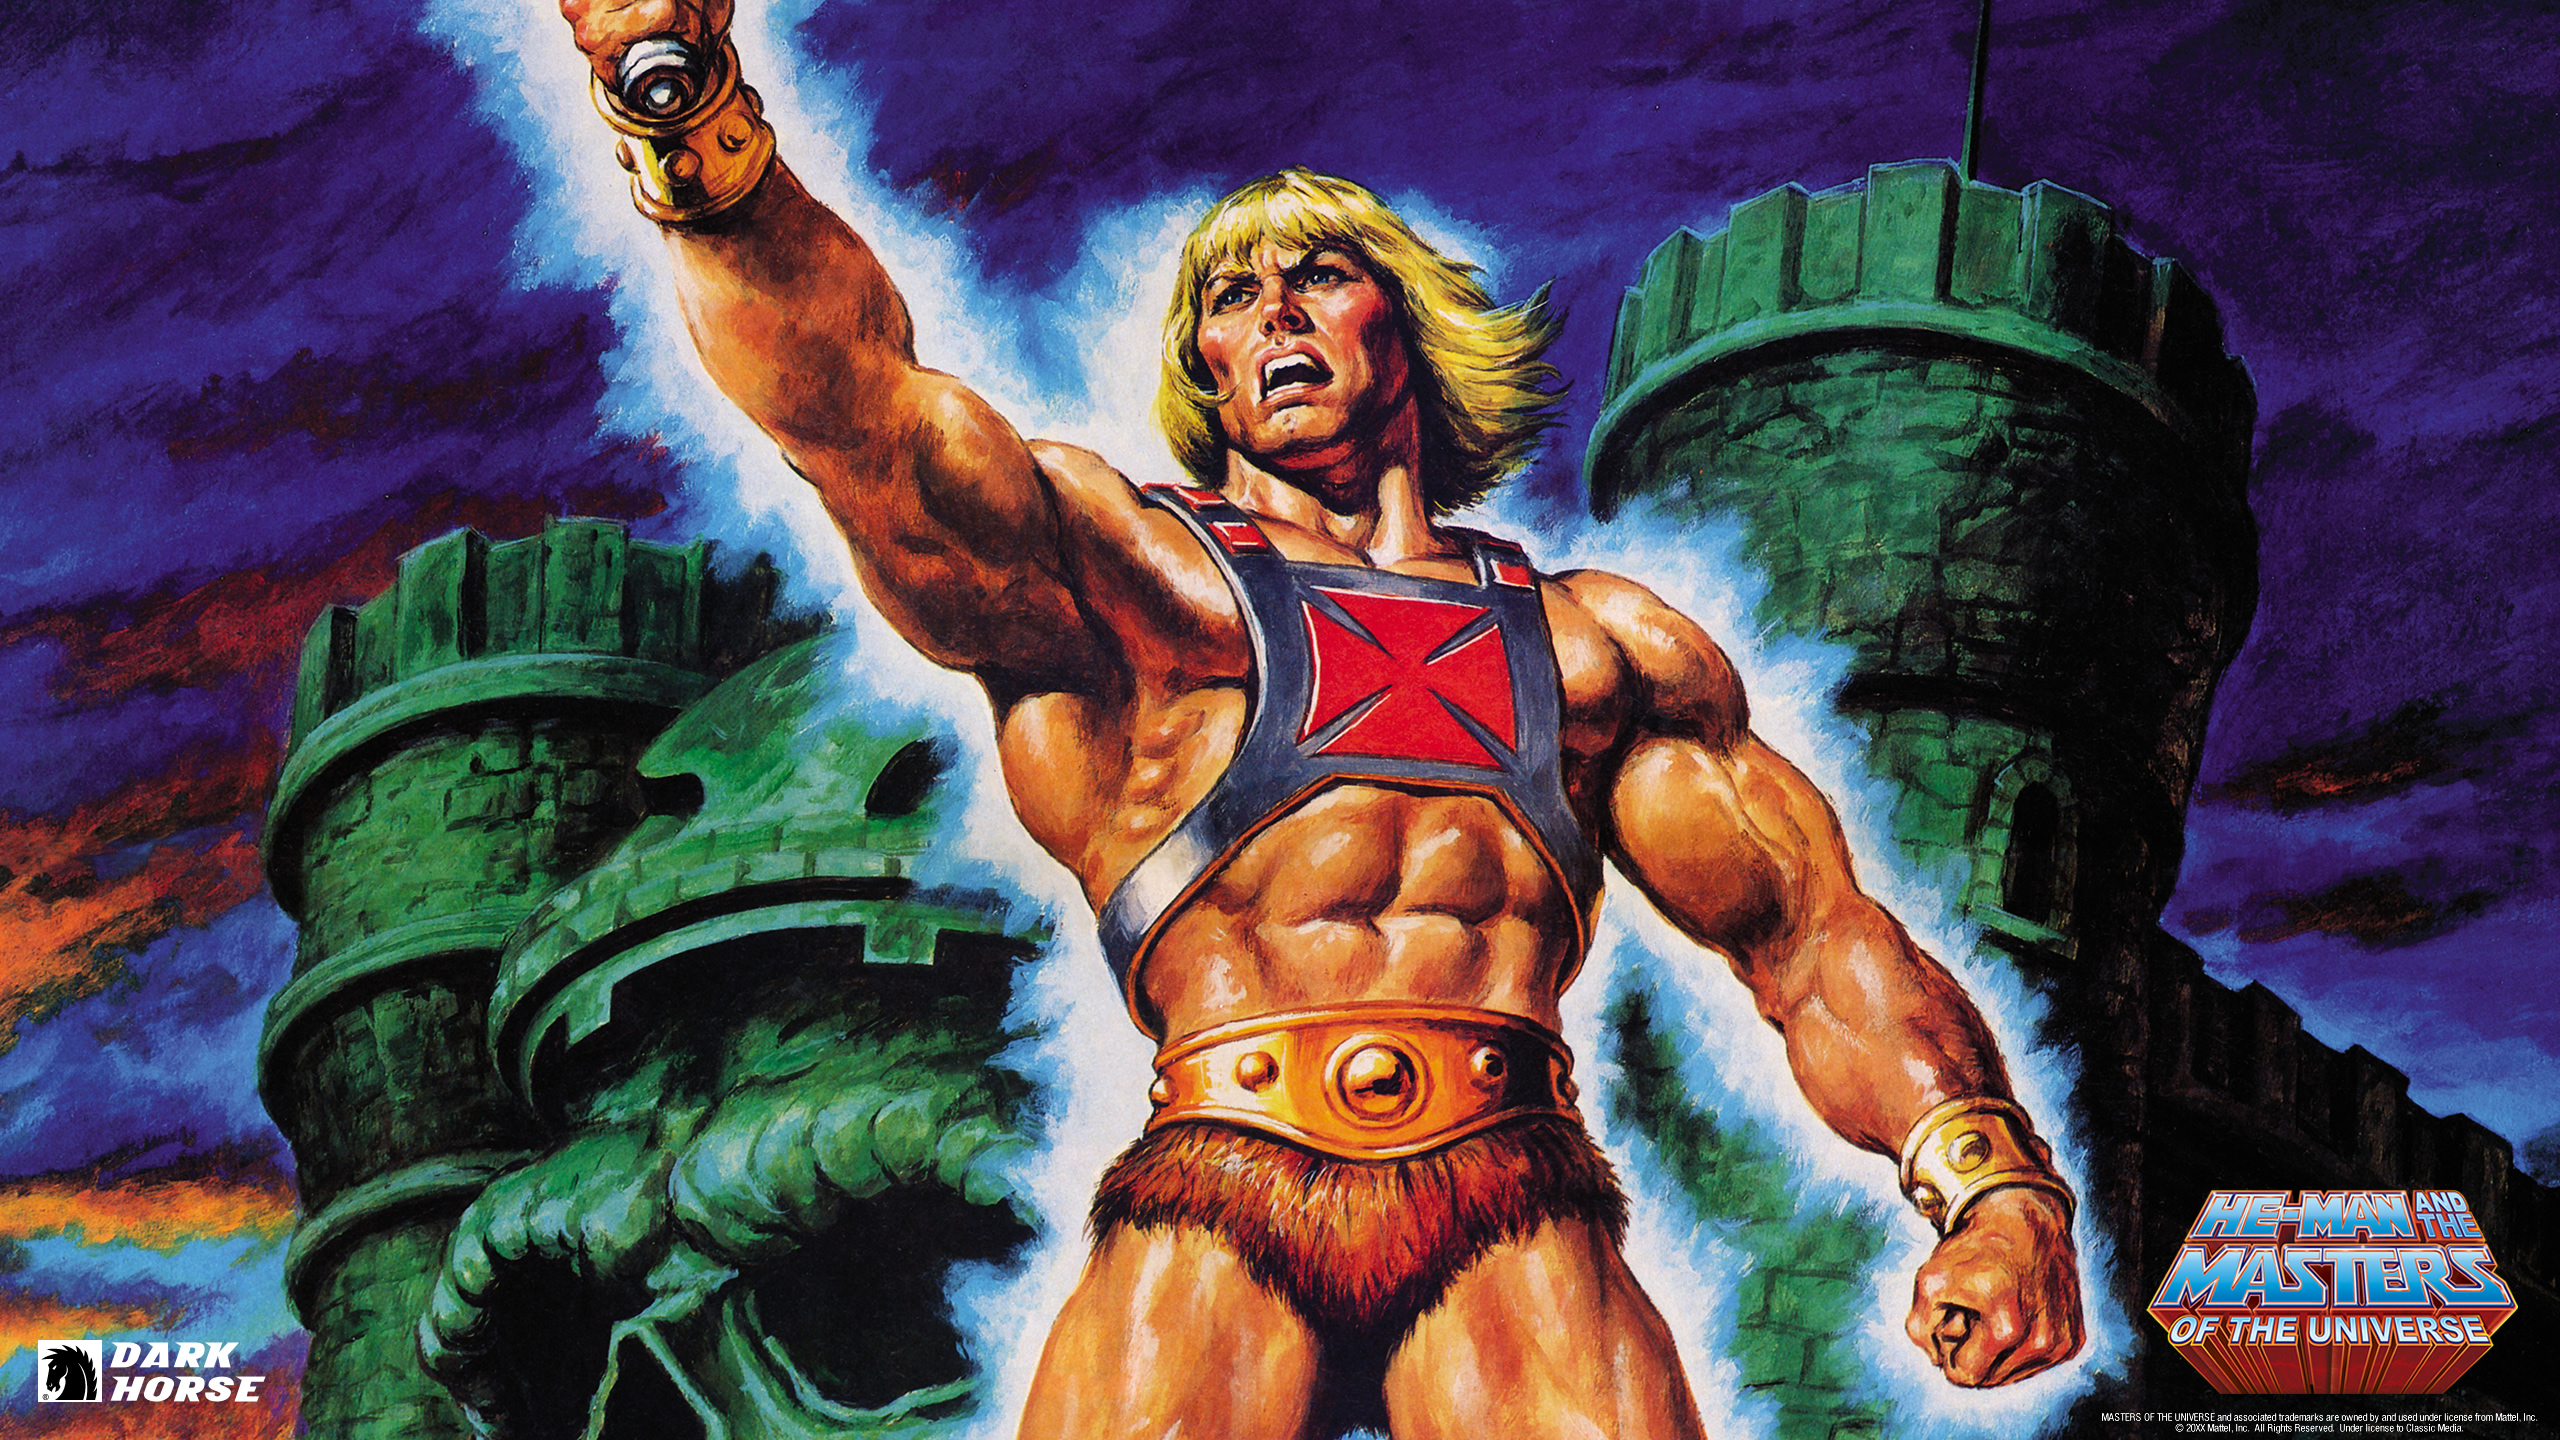 He Man And The Masters Of The Universe 1694916 Hd Wallpaper